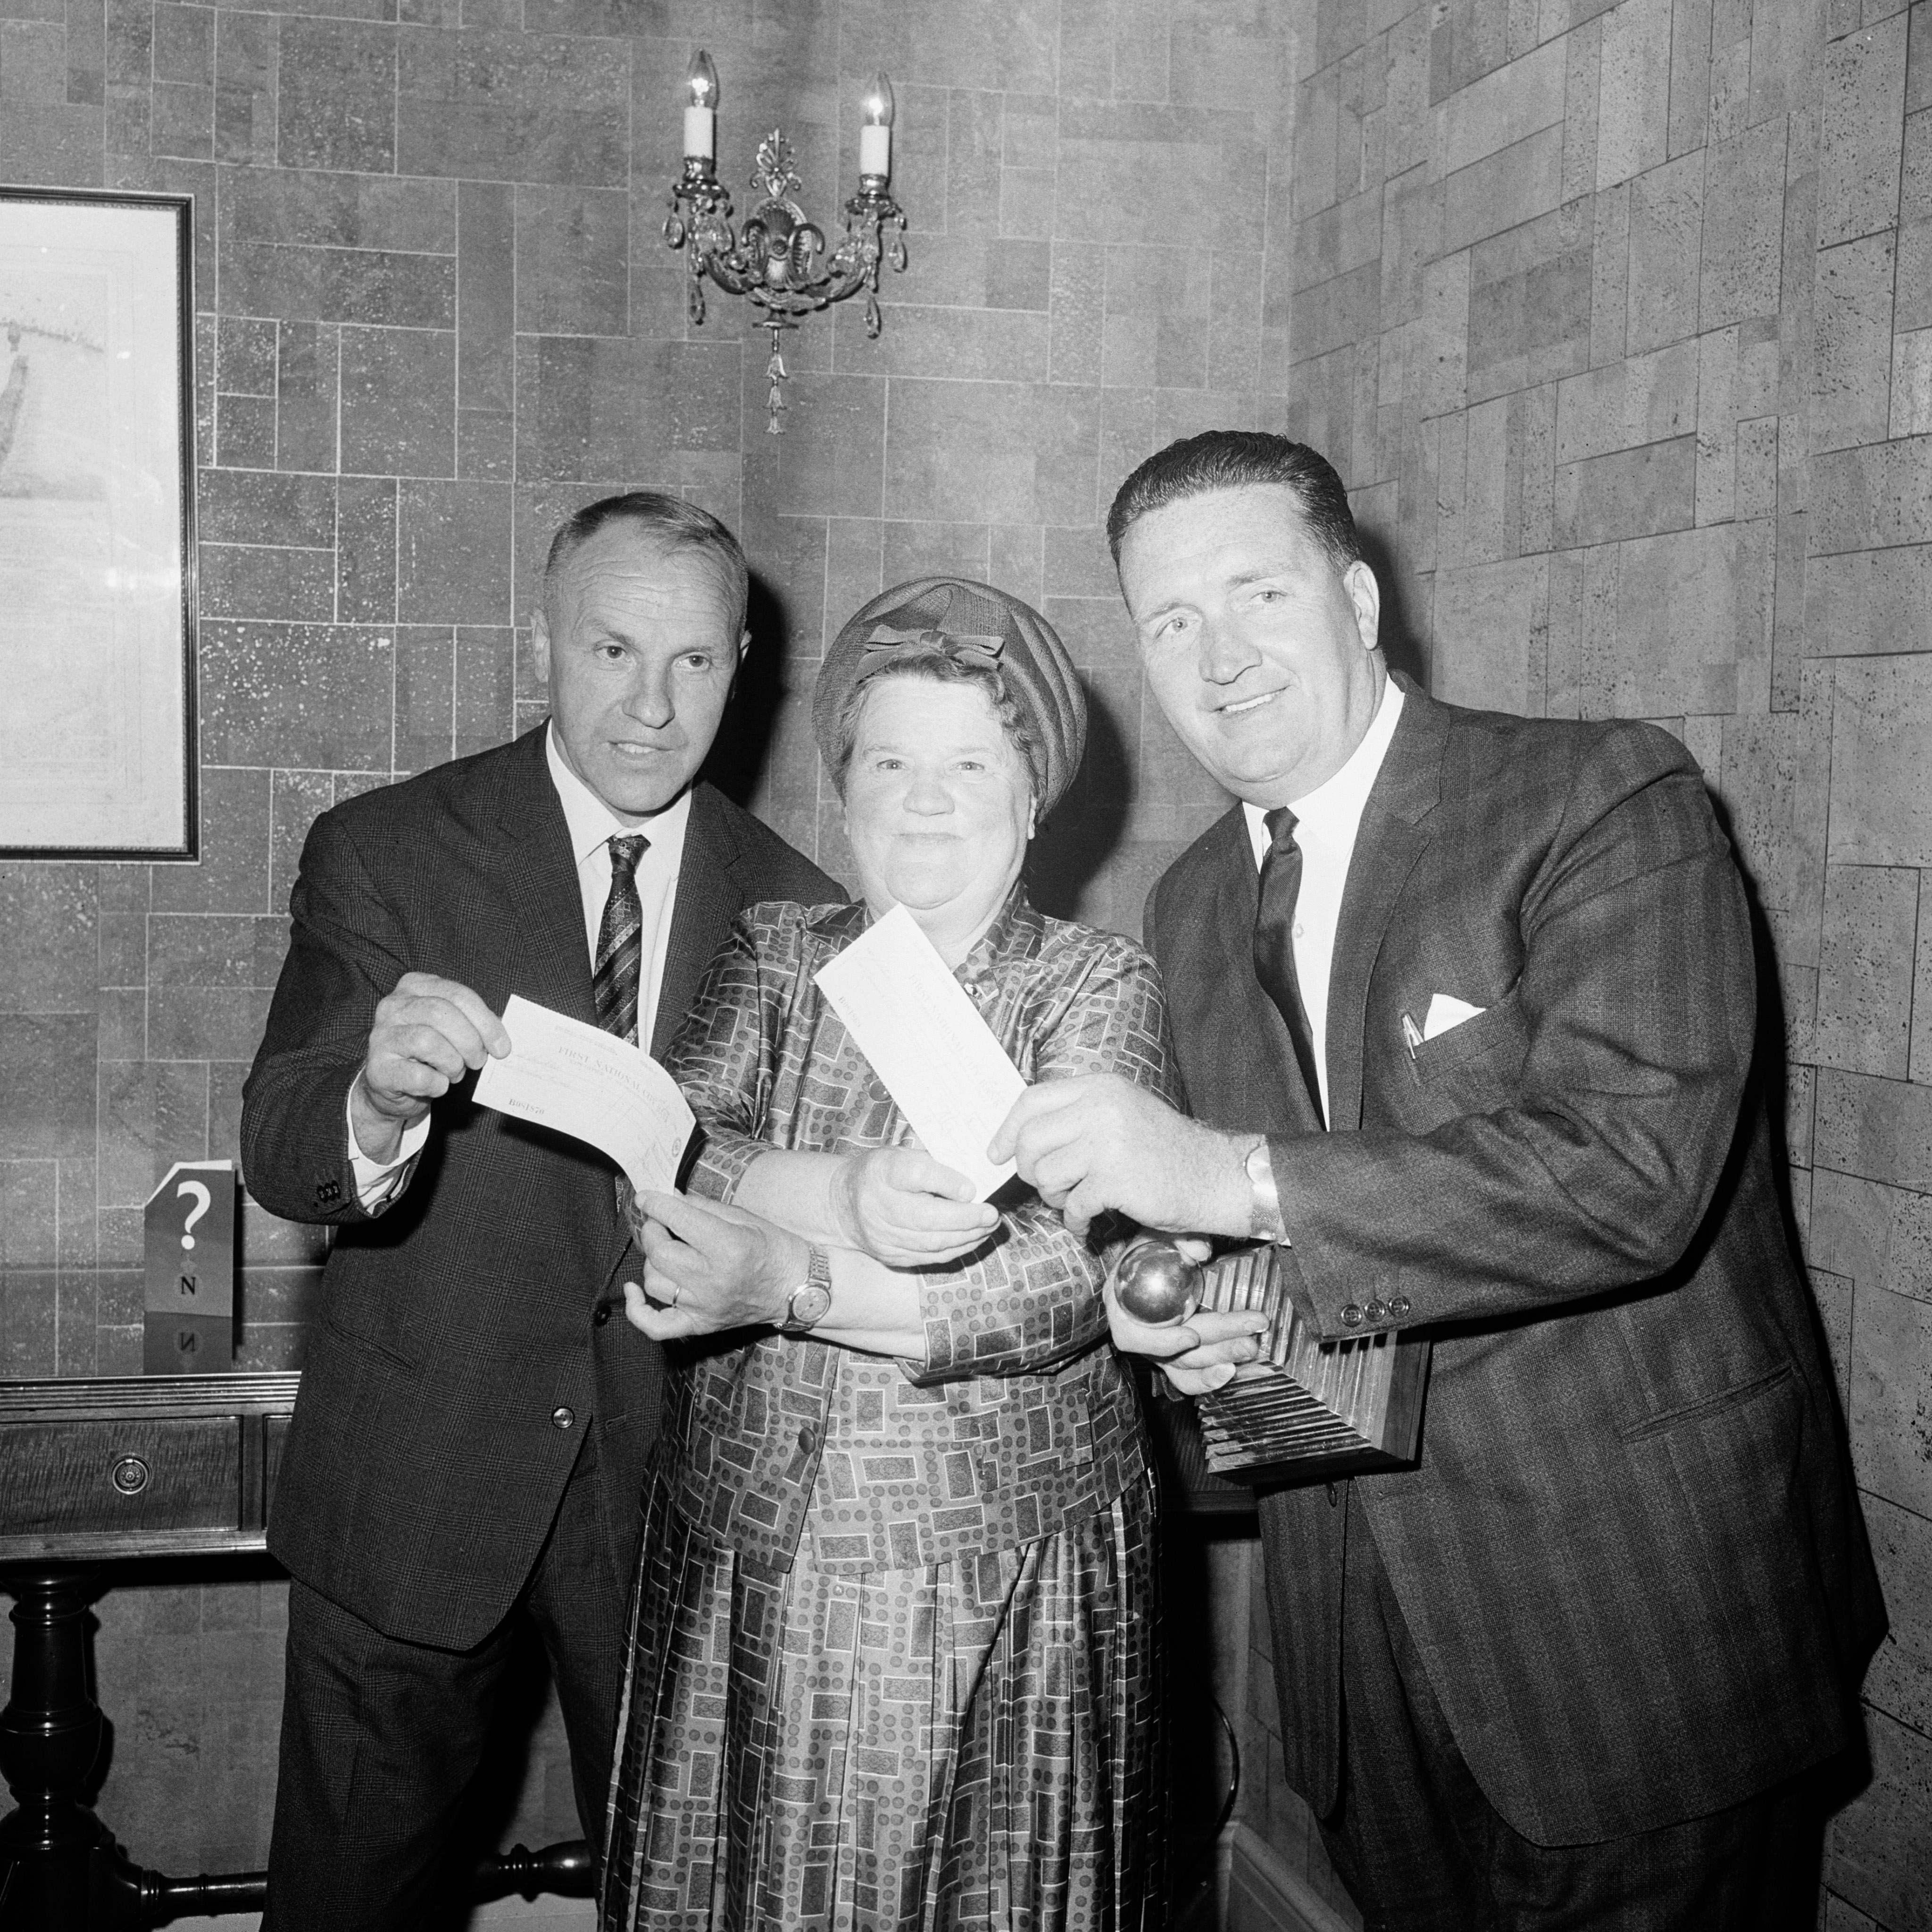 Liverpool Exchange MP Bessie Braddock (c) presents the two winning managers, Liverpool's Bill Shankly (l) and Celtic's Jock Stein (r), with their cheques for £500 and £1000 respectively as Stein holds onto his Manager of the Year trophy. 16/6/1966.